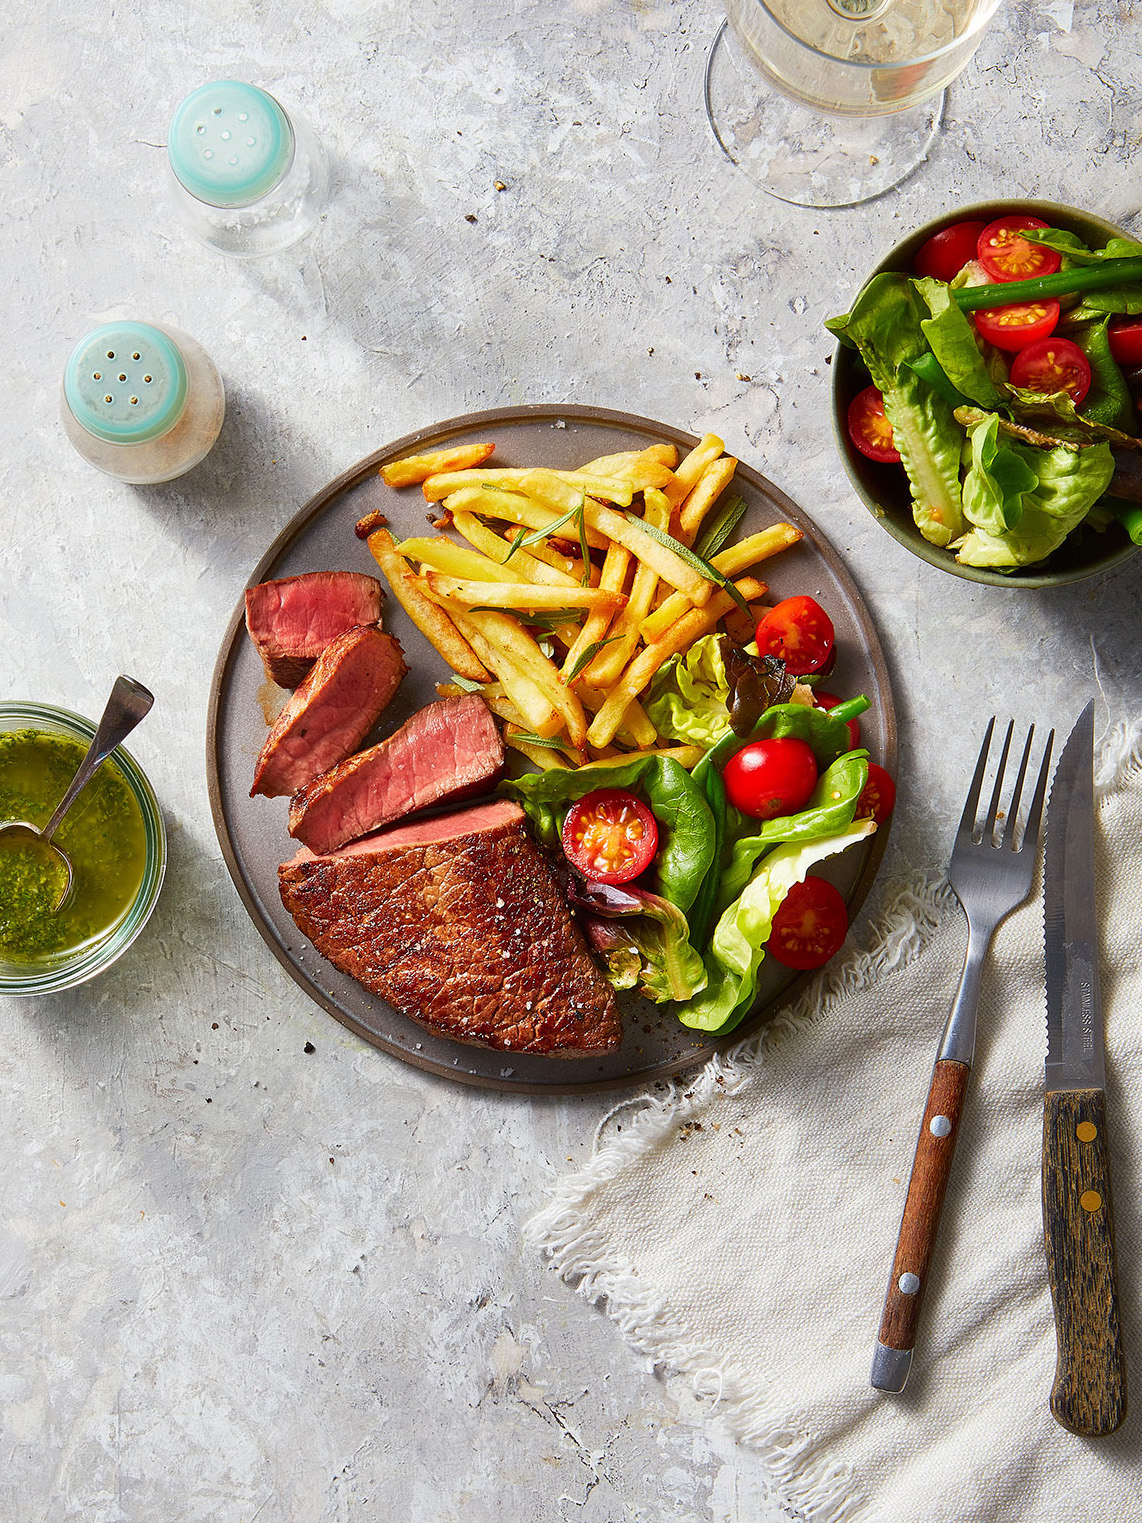 Fillet Steak Served with rosemary french fries and summer salad